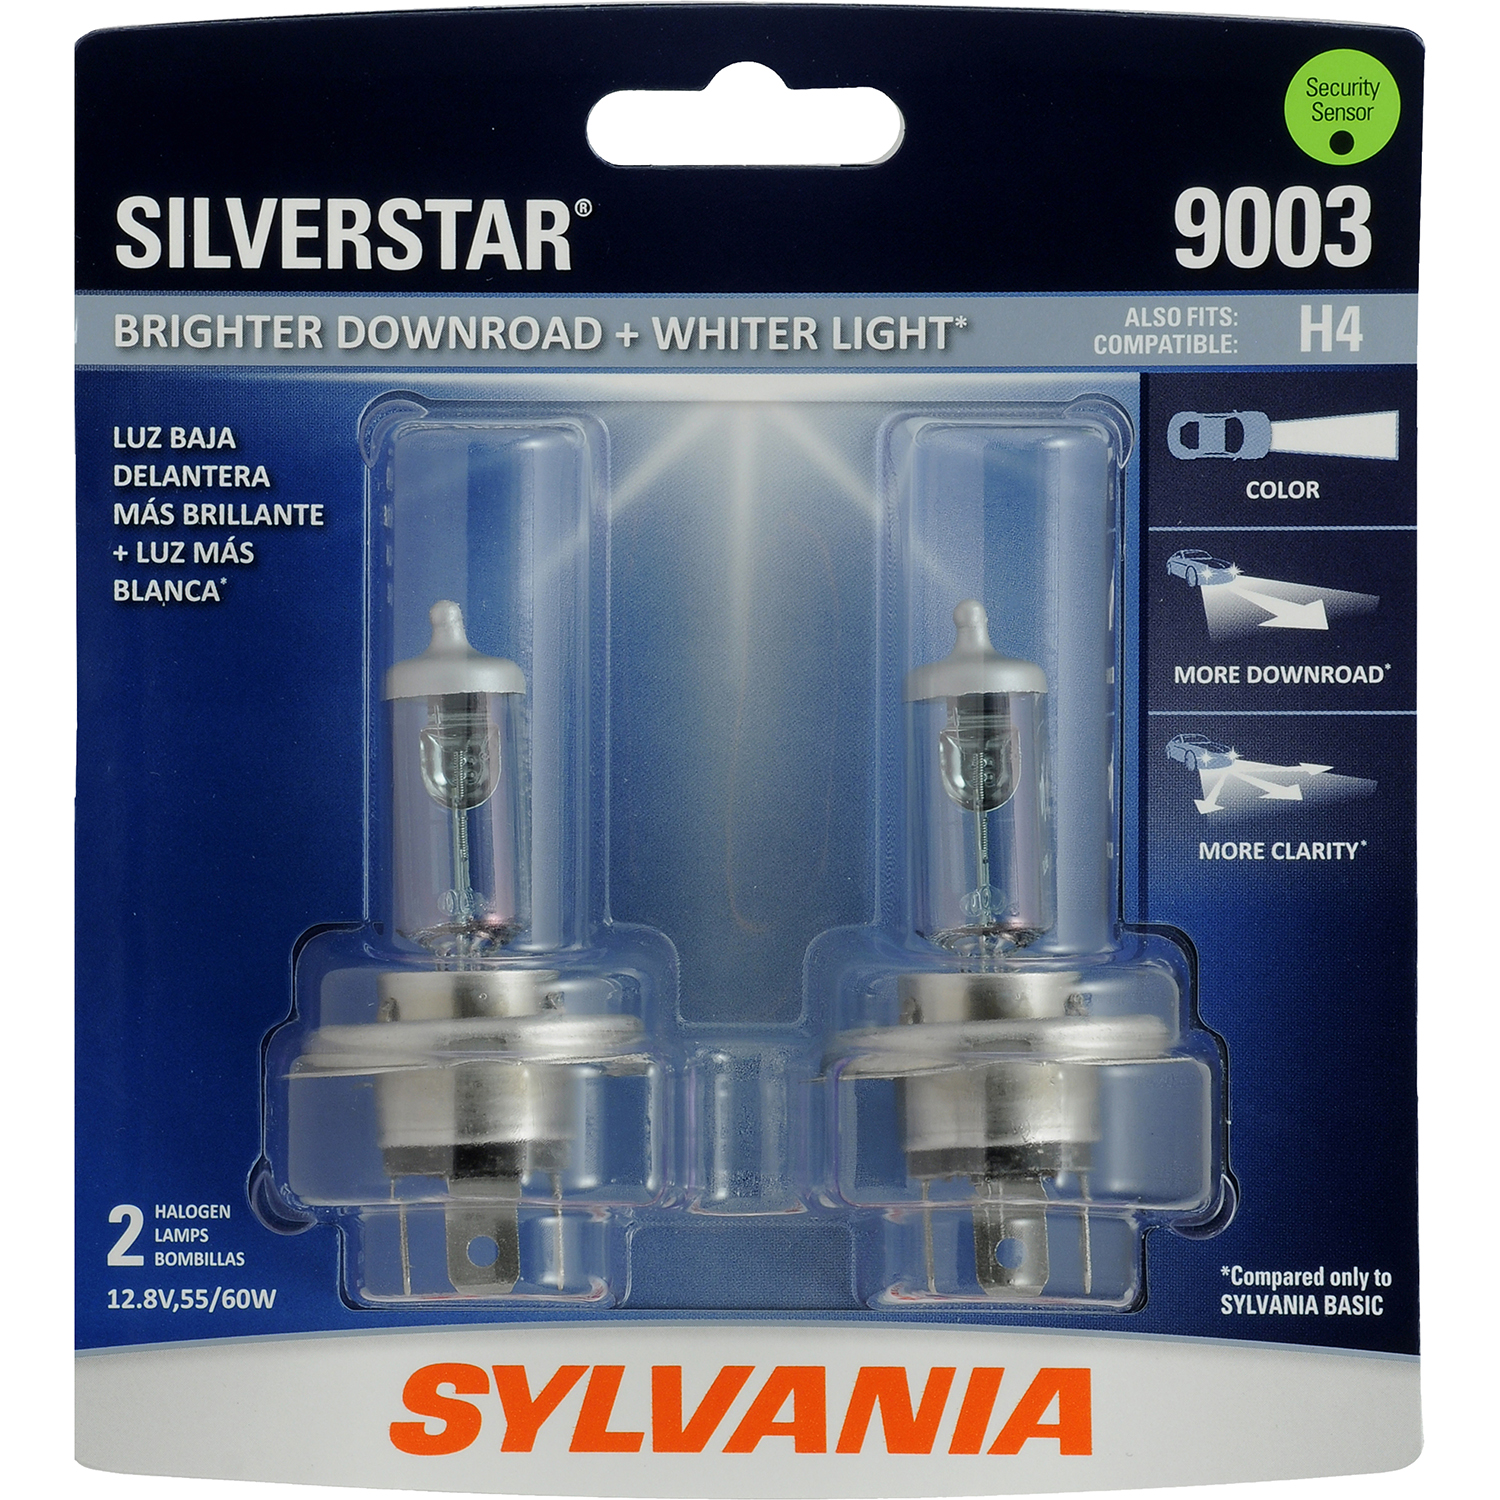 SYLVANIA 9003 SilverStar Halogen Headlight Bulb, Pack of 2